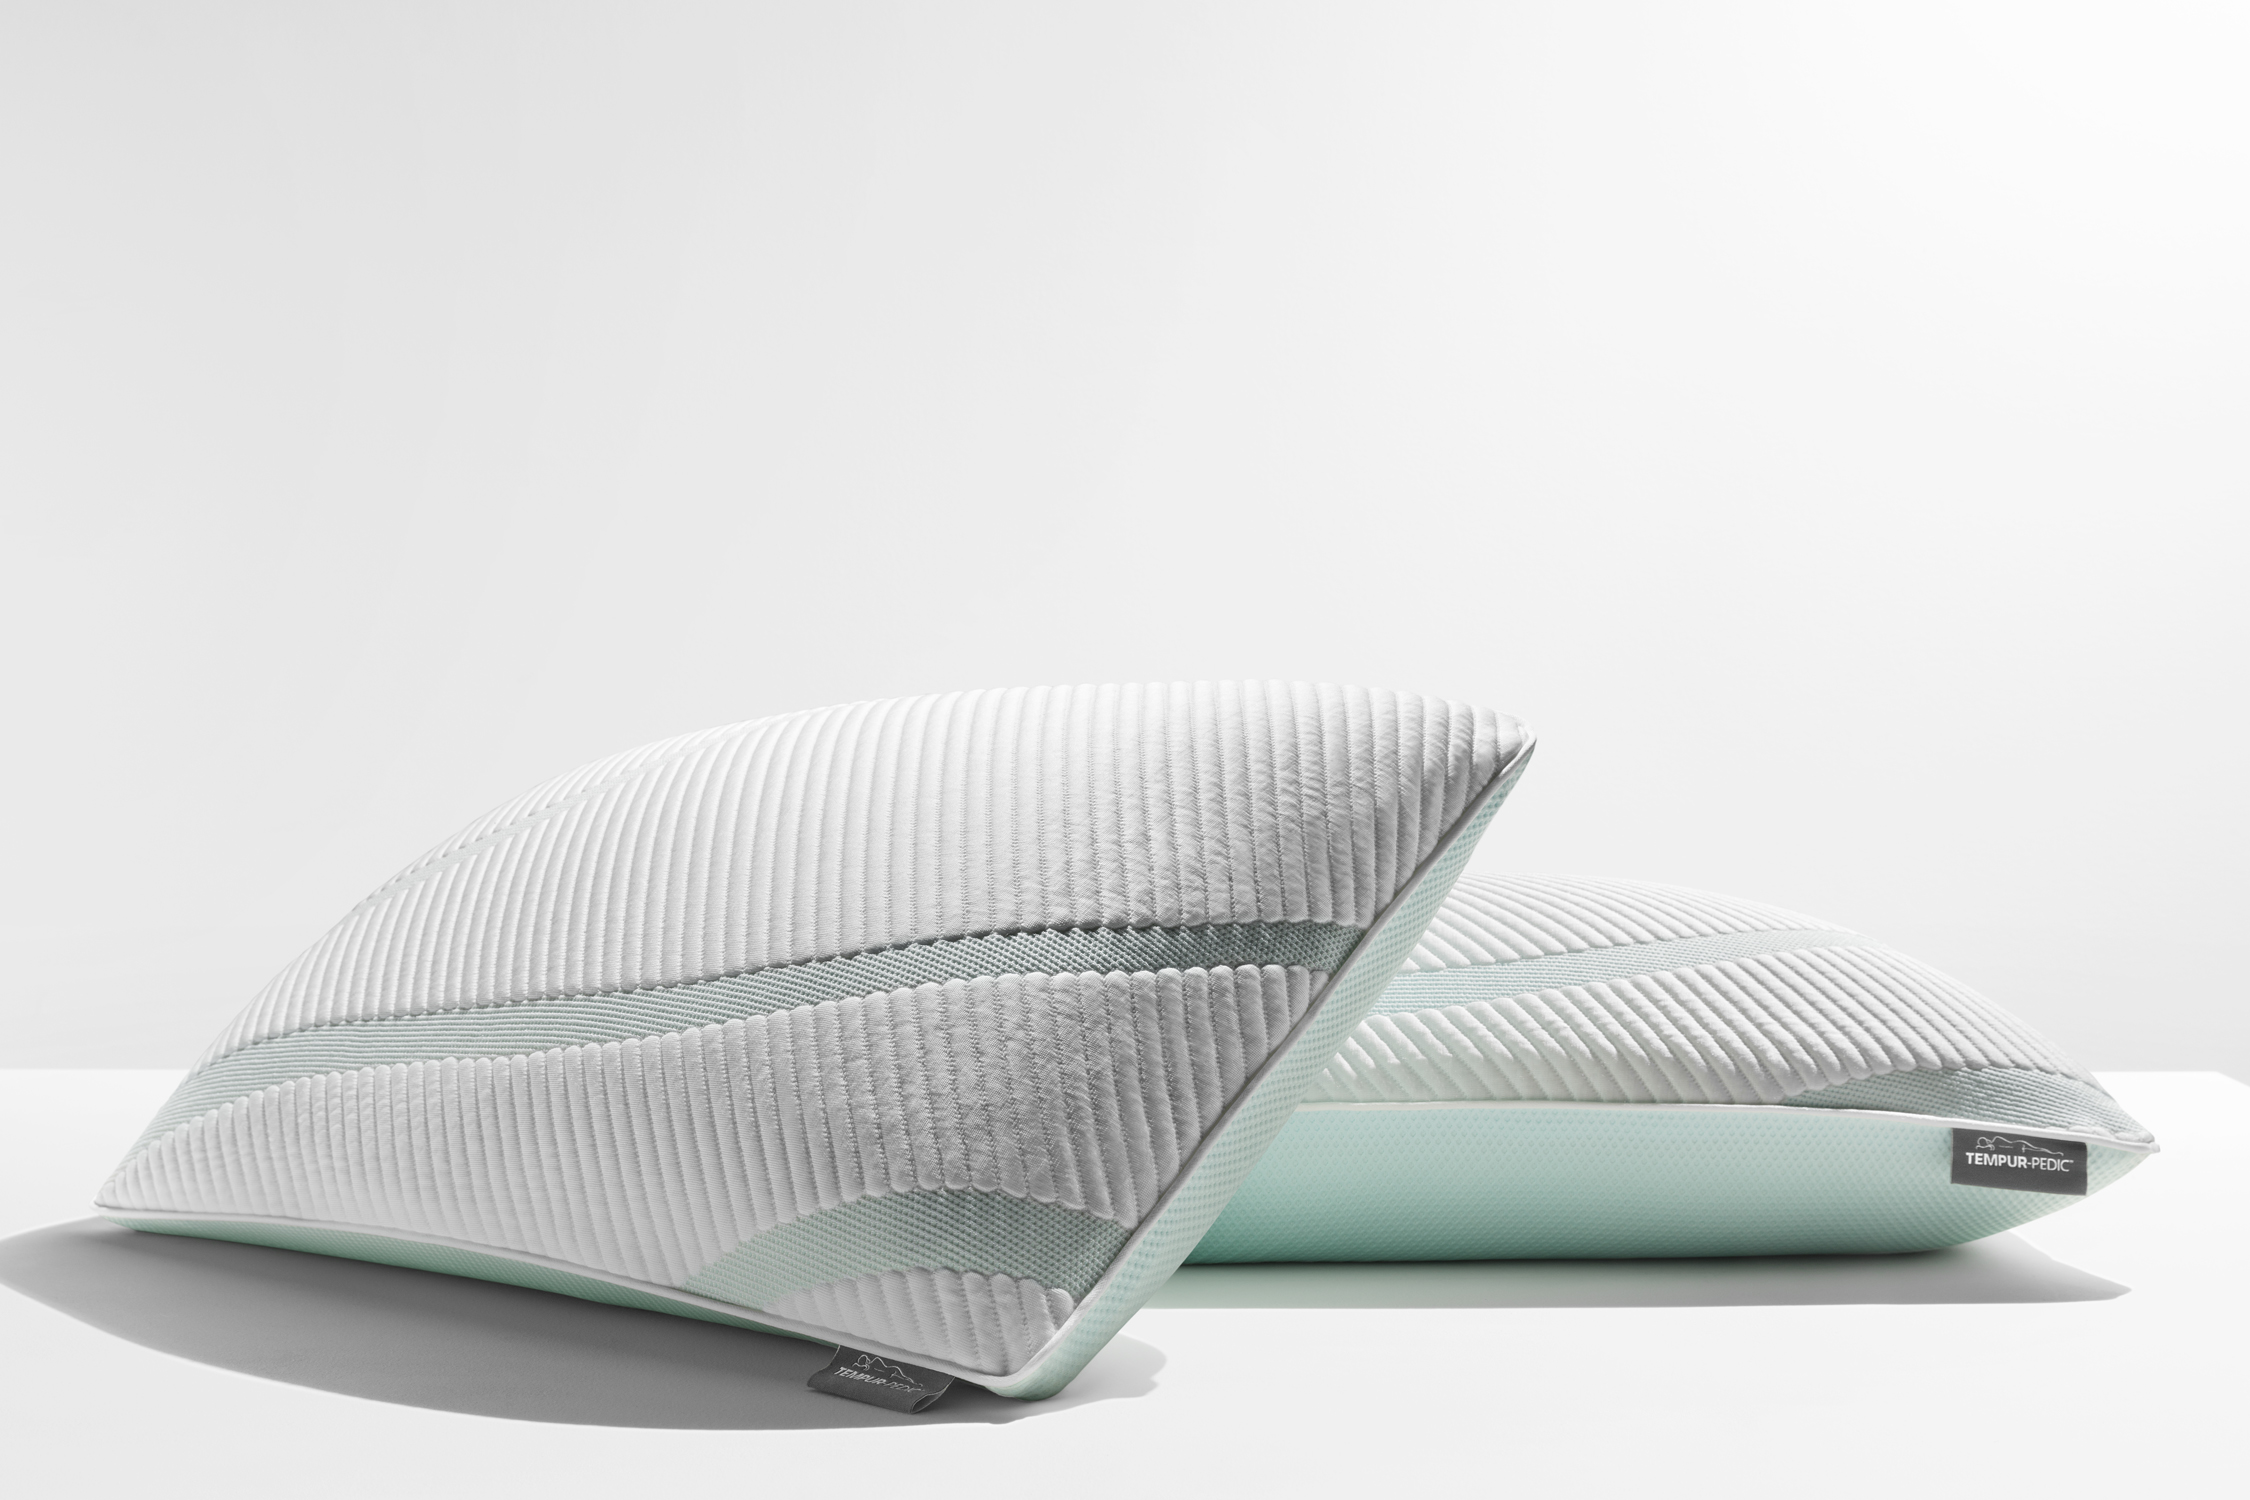 tempur adapt promid cooling pillow by tempur pedic the back store sleep well we ve got your back